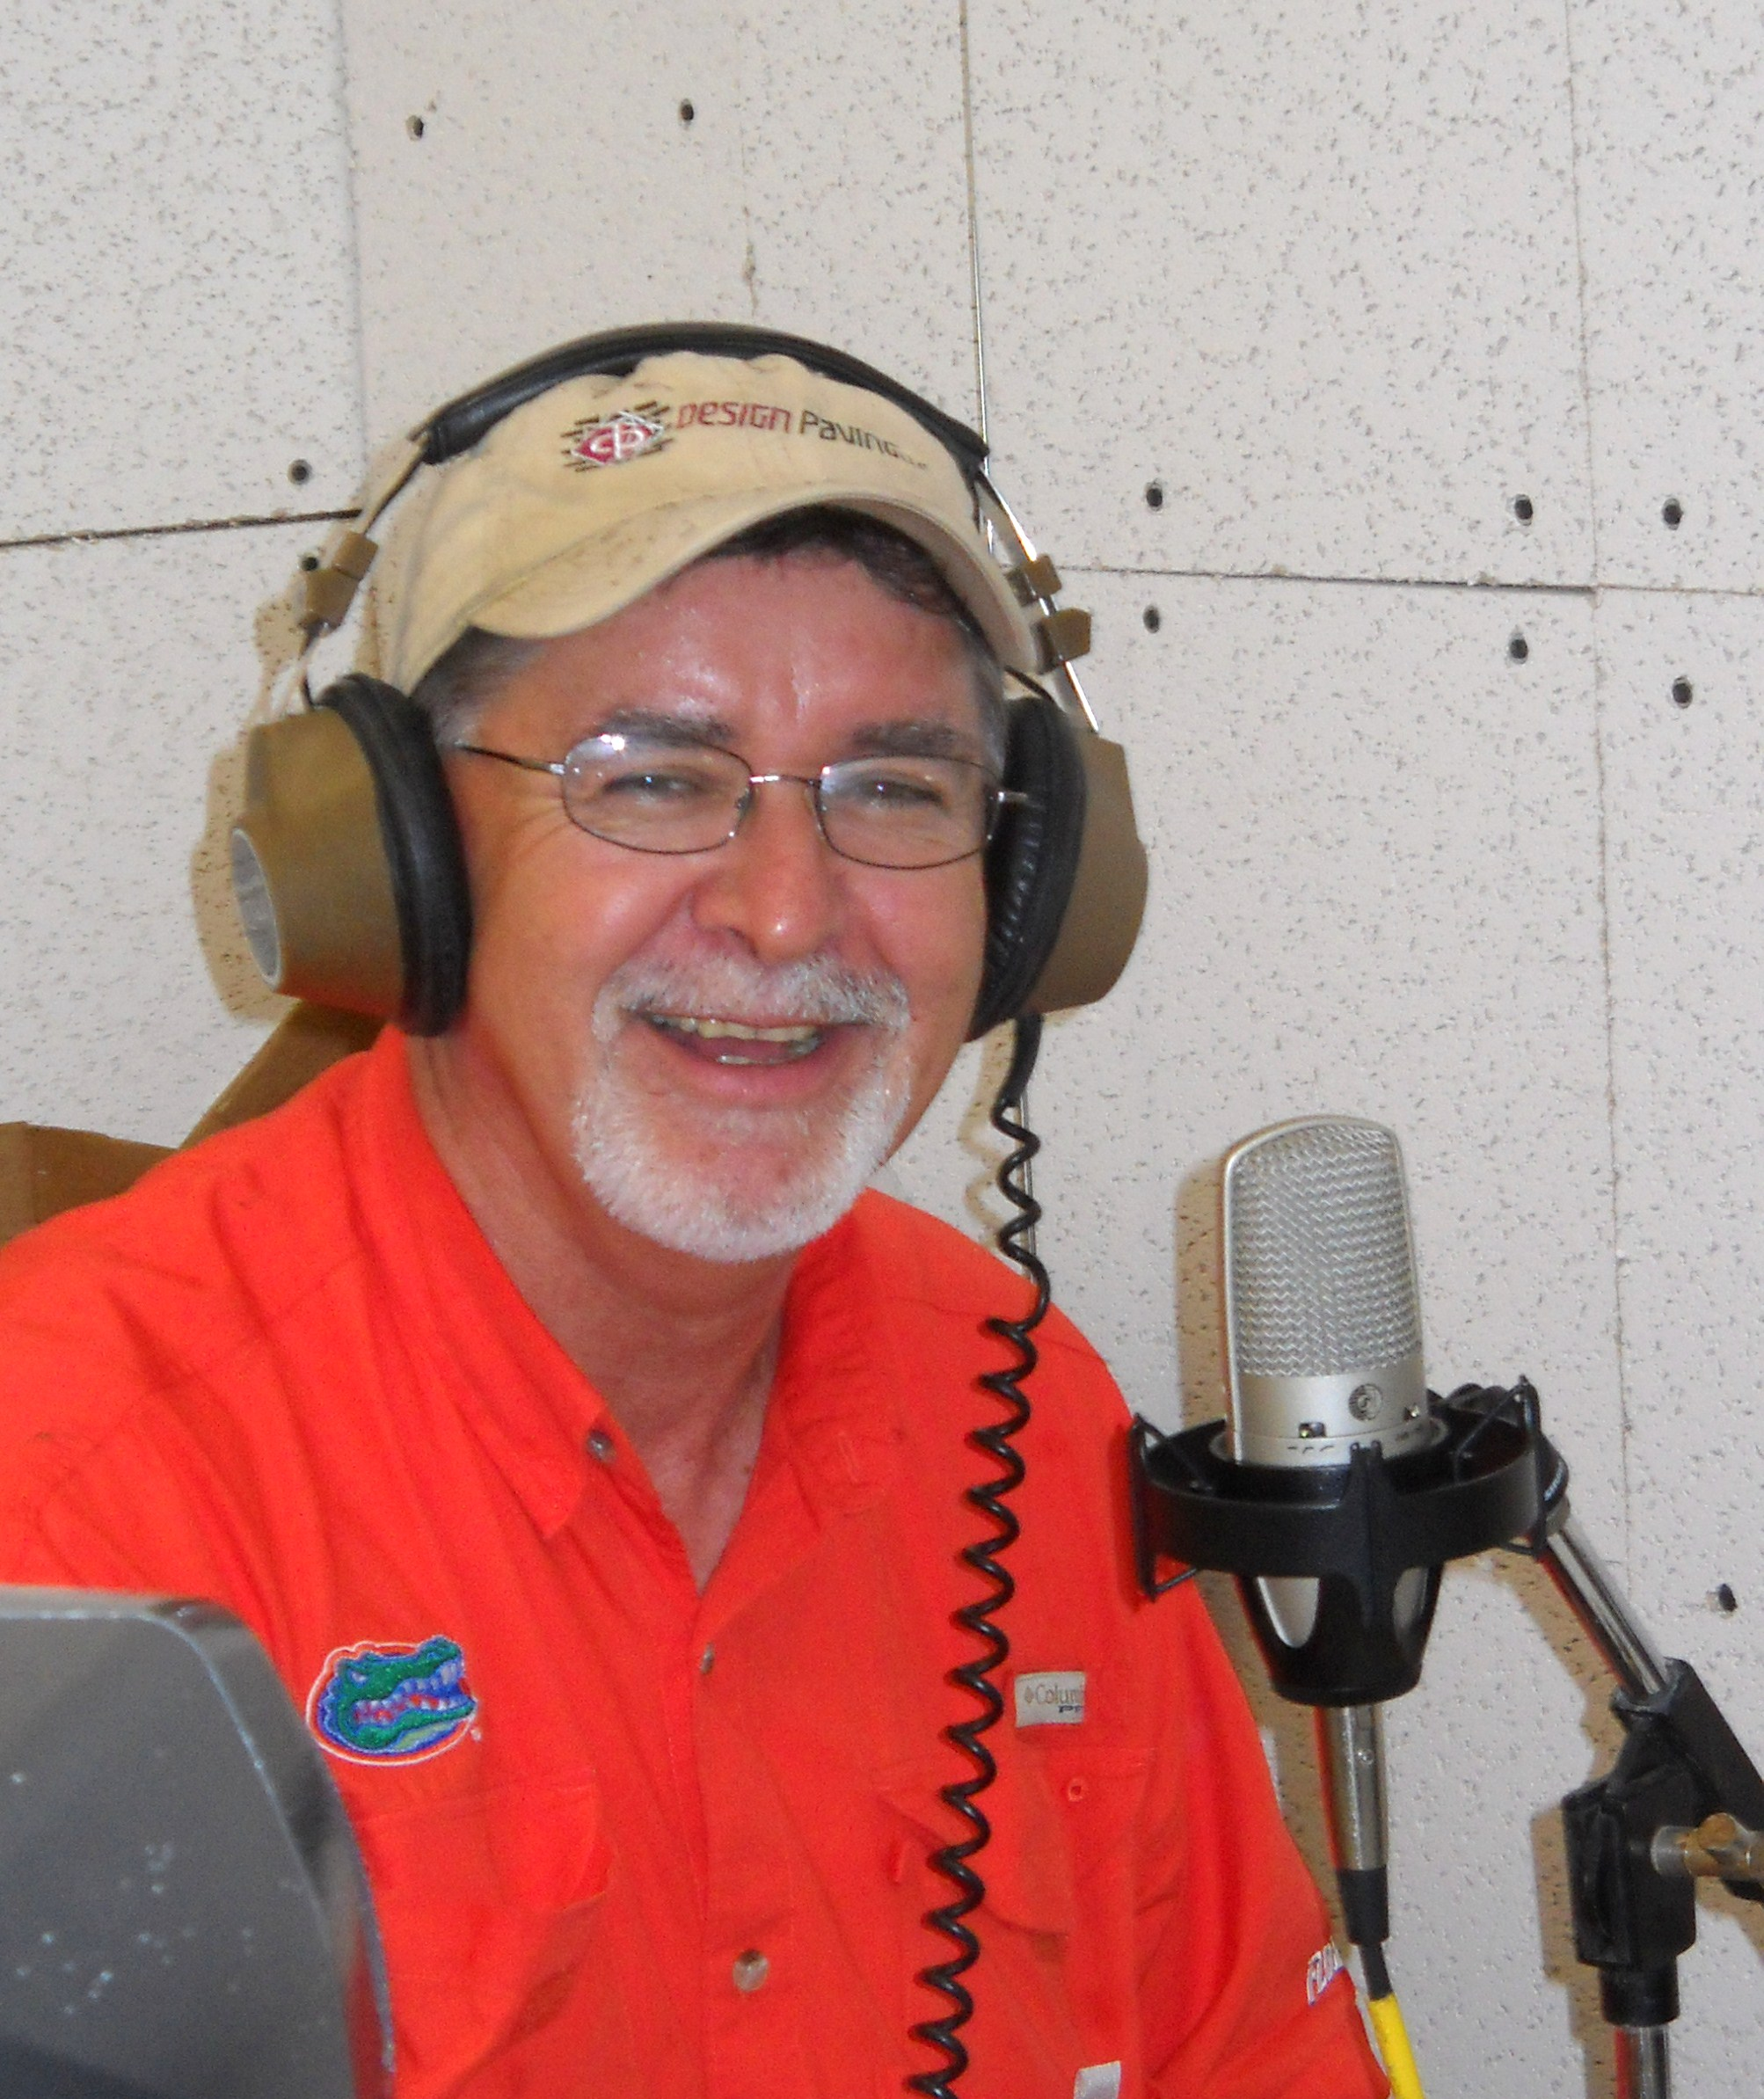 SOSMP Radio studio's first day on air Aug. 8, 2010 with bluegrass radio host Don Miller